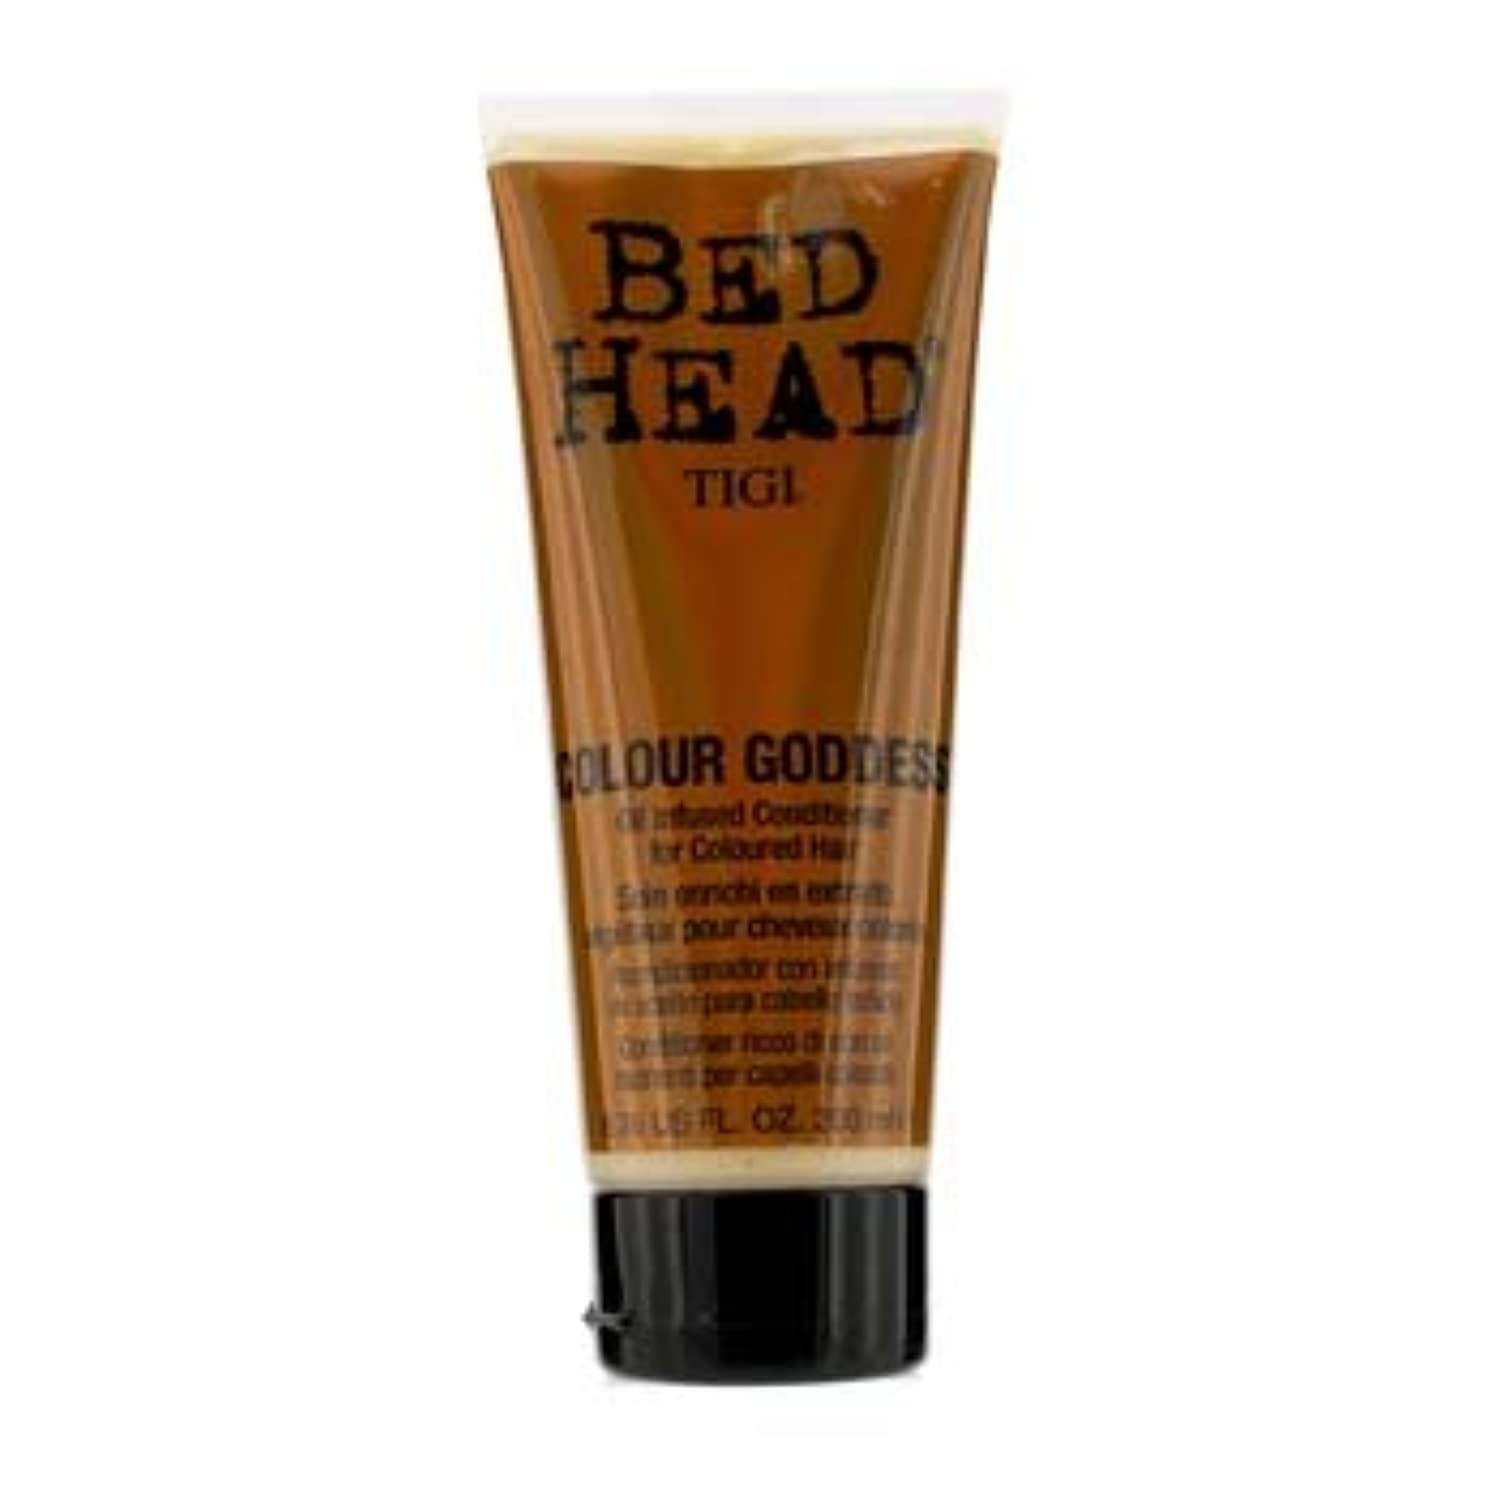 そしてくるくるのため[Tigi] Bed Head Colour Goddess Oil Infused Conditioner (For Coloured Hair) 200ml/6.76oz